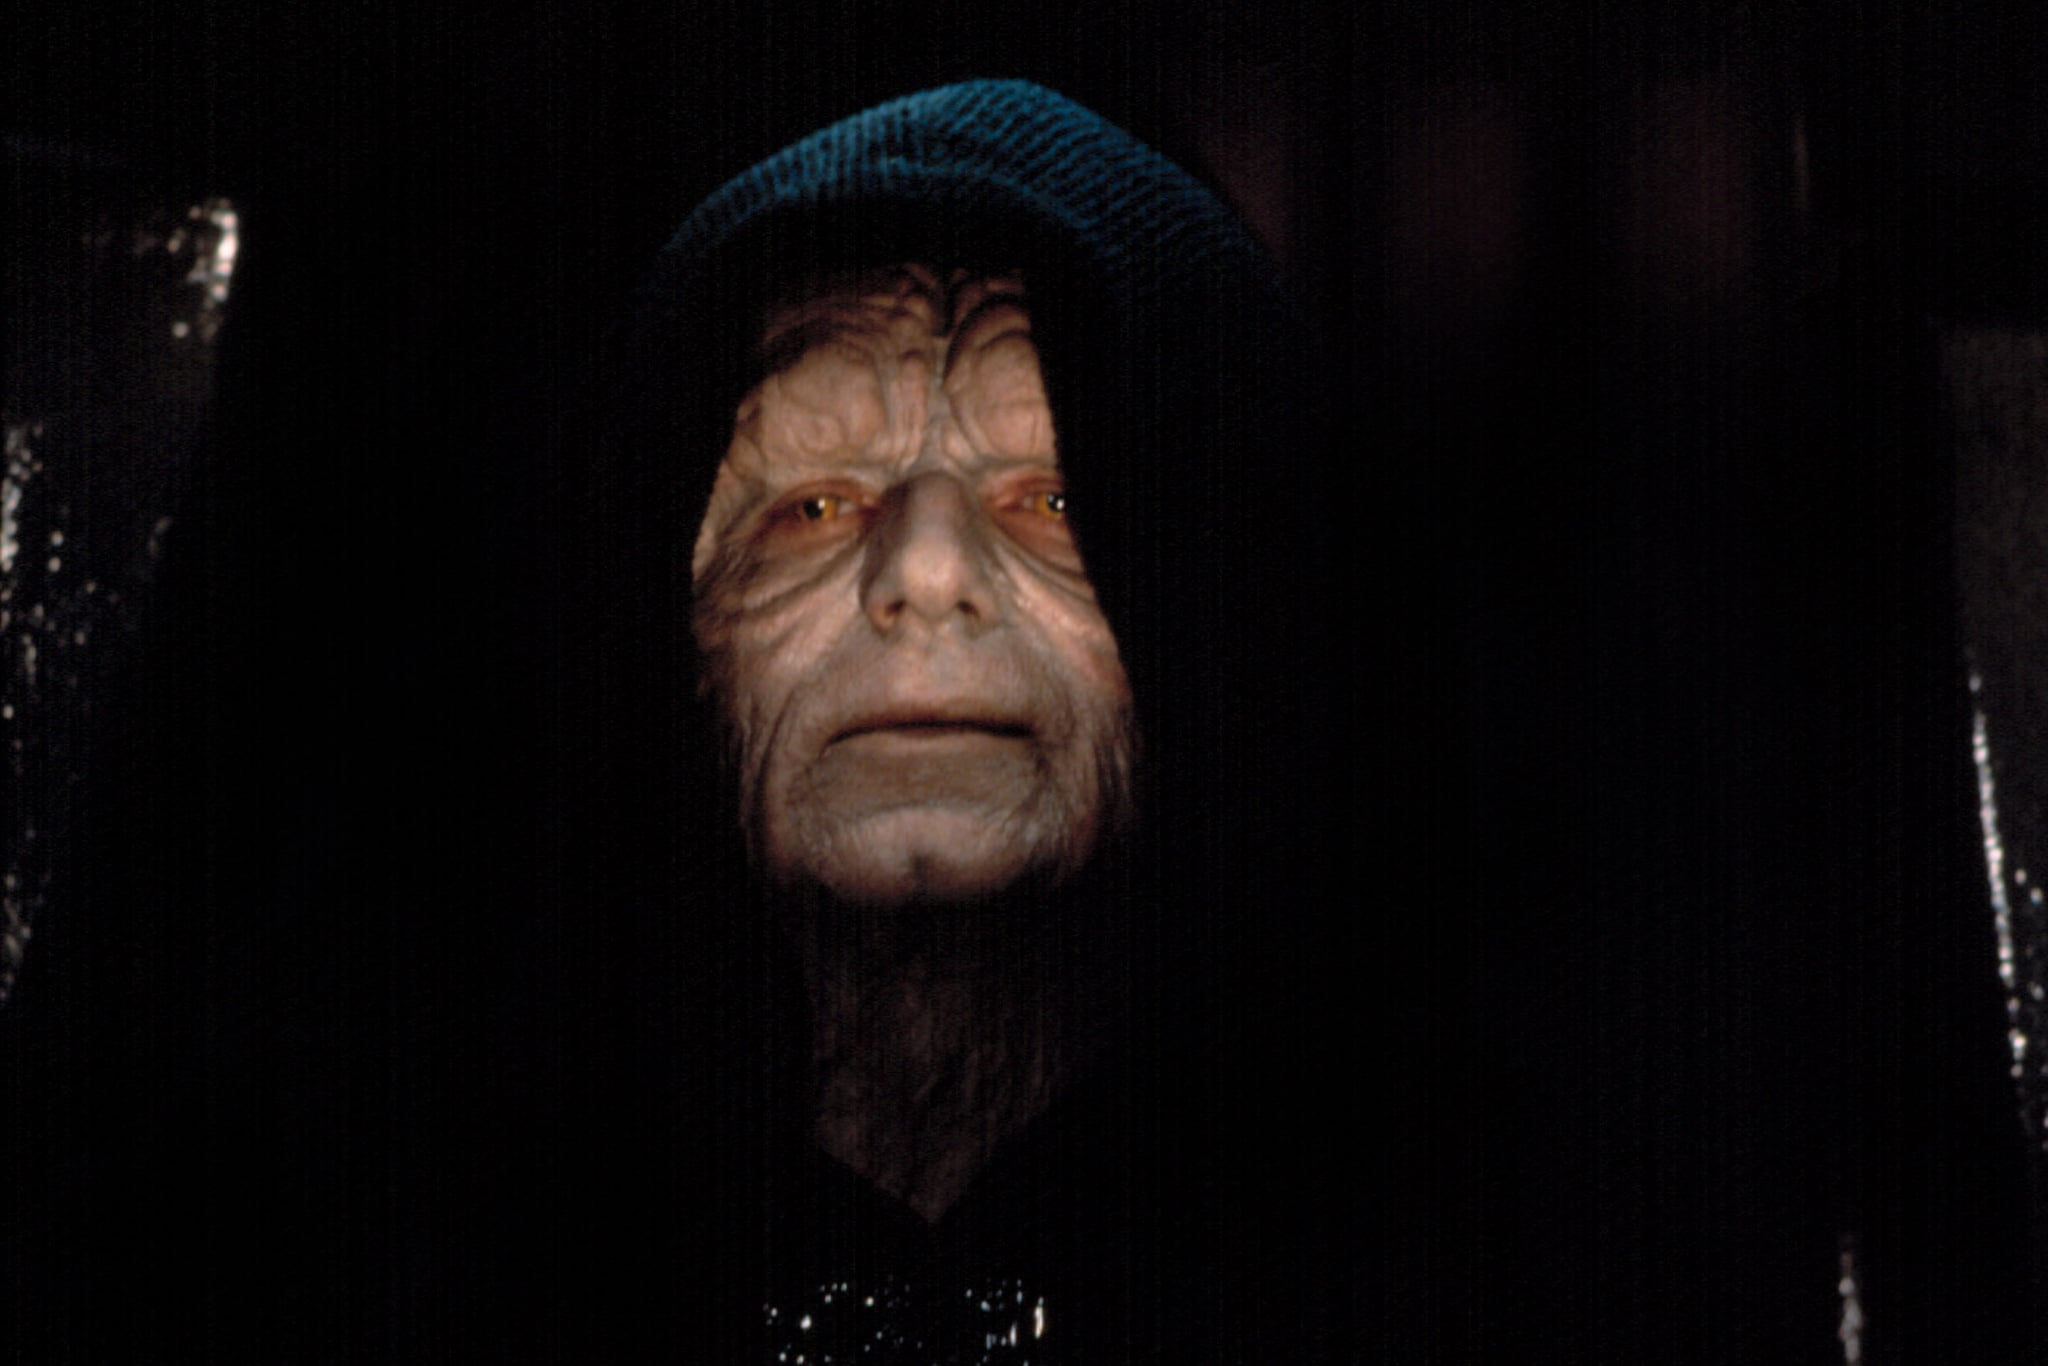 STAR WARS: EPISODE VI - RETURN OF THE JEDI, Ian McDiarmid, 1983